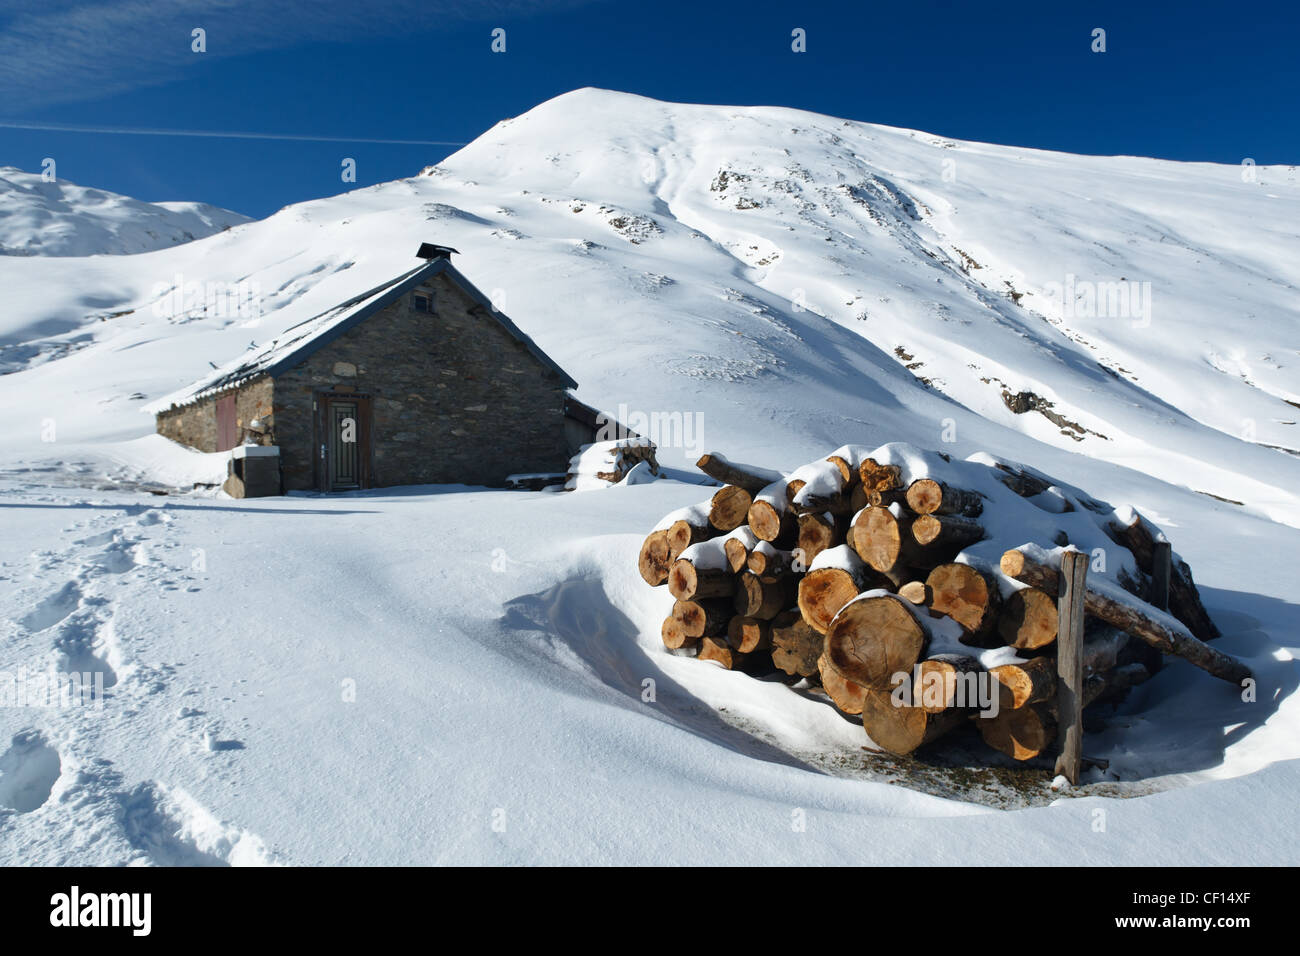 Firewood piled outside a mountain shelter in snowy mountain landscape near Col de Pause, Ariege, Pyrenees, France. - Stock Image